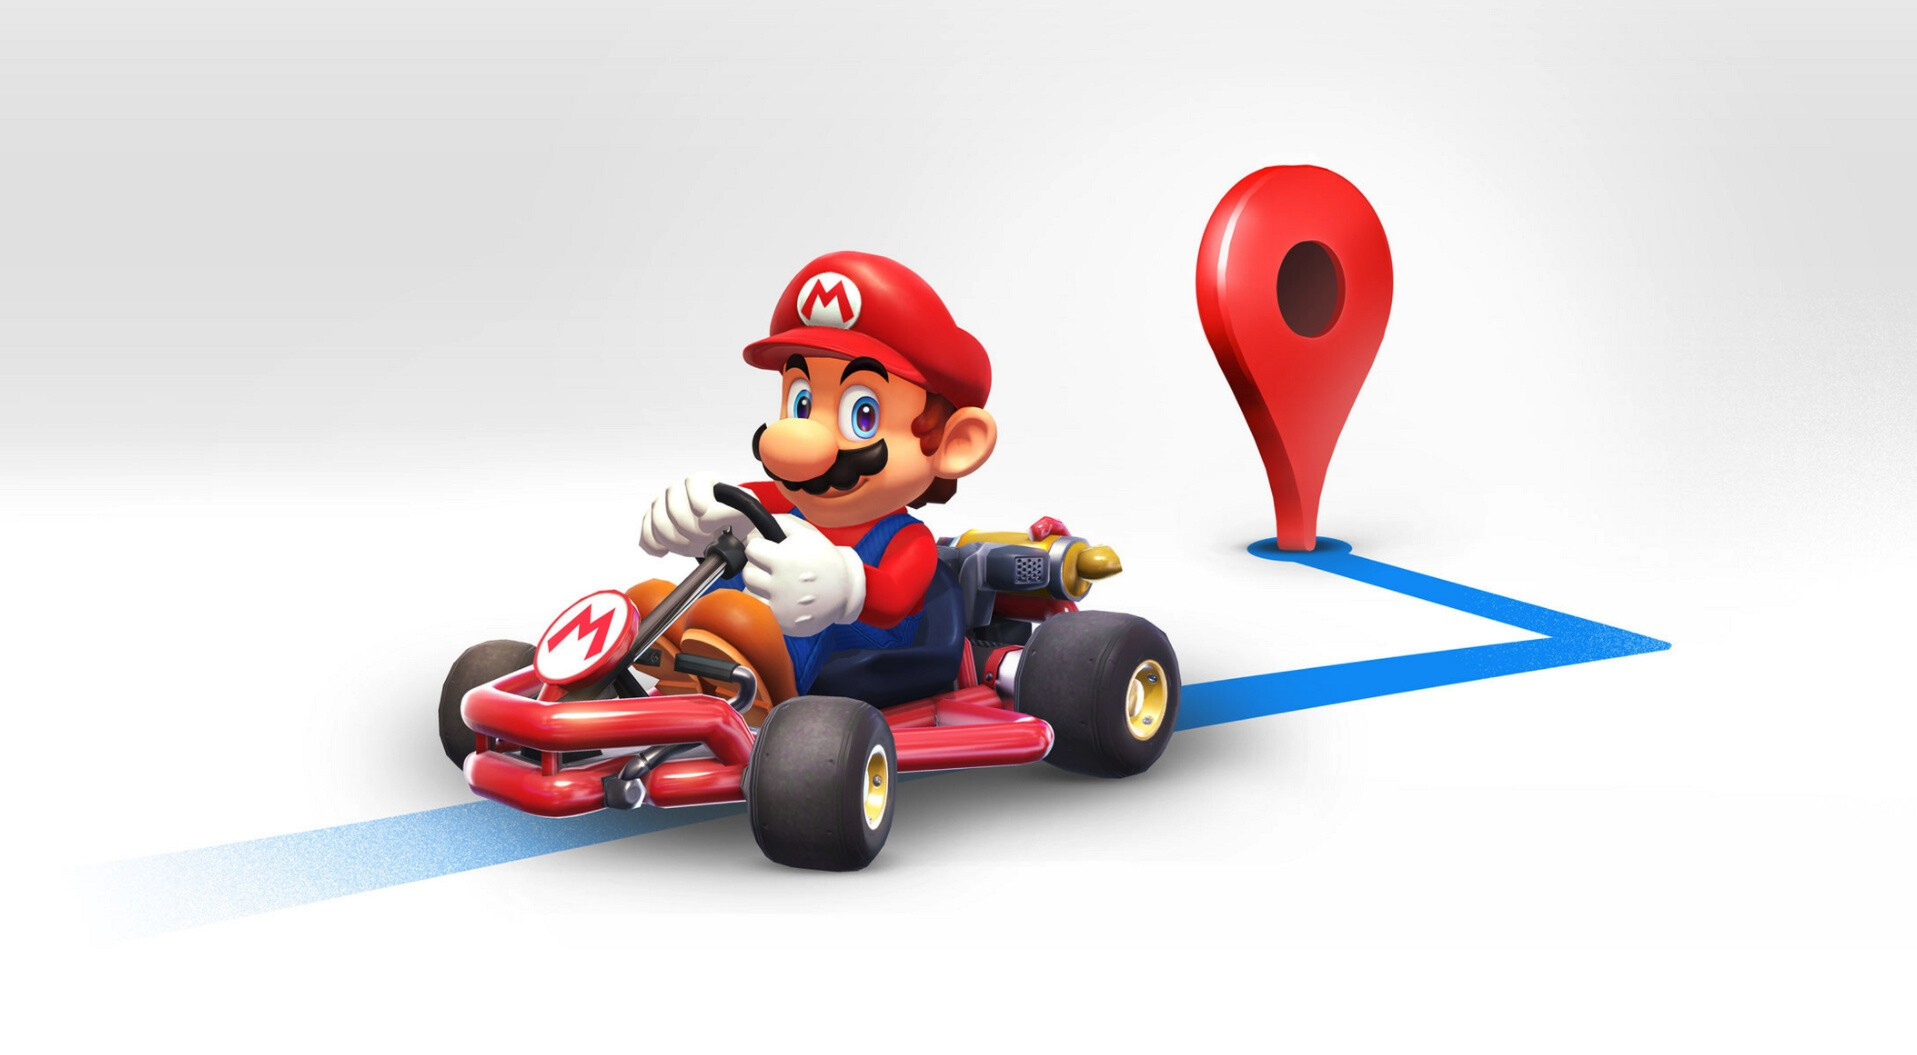 Google Maps turned into Mario Kart for Mario Day